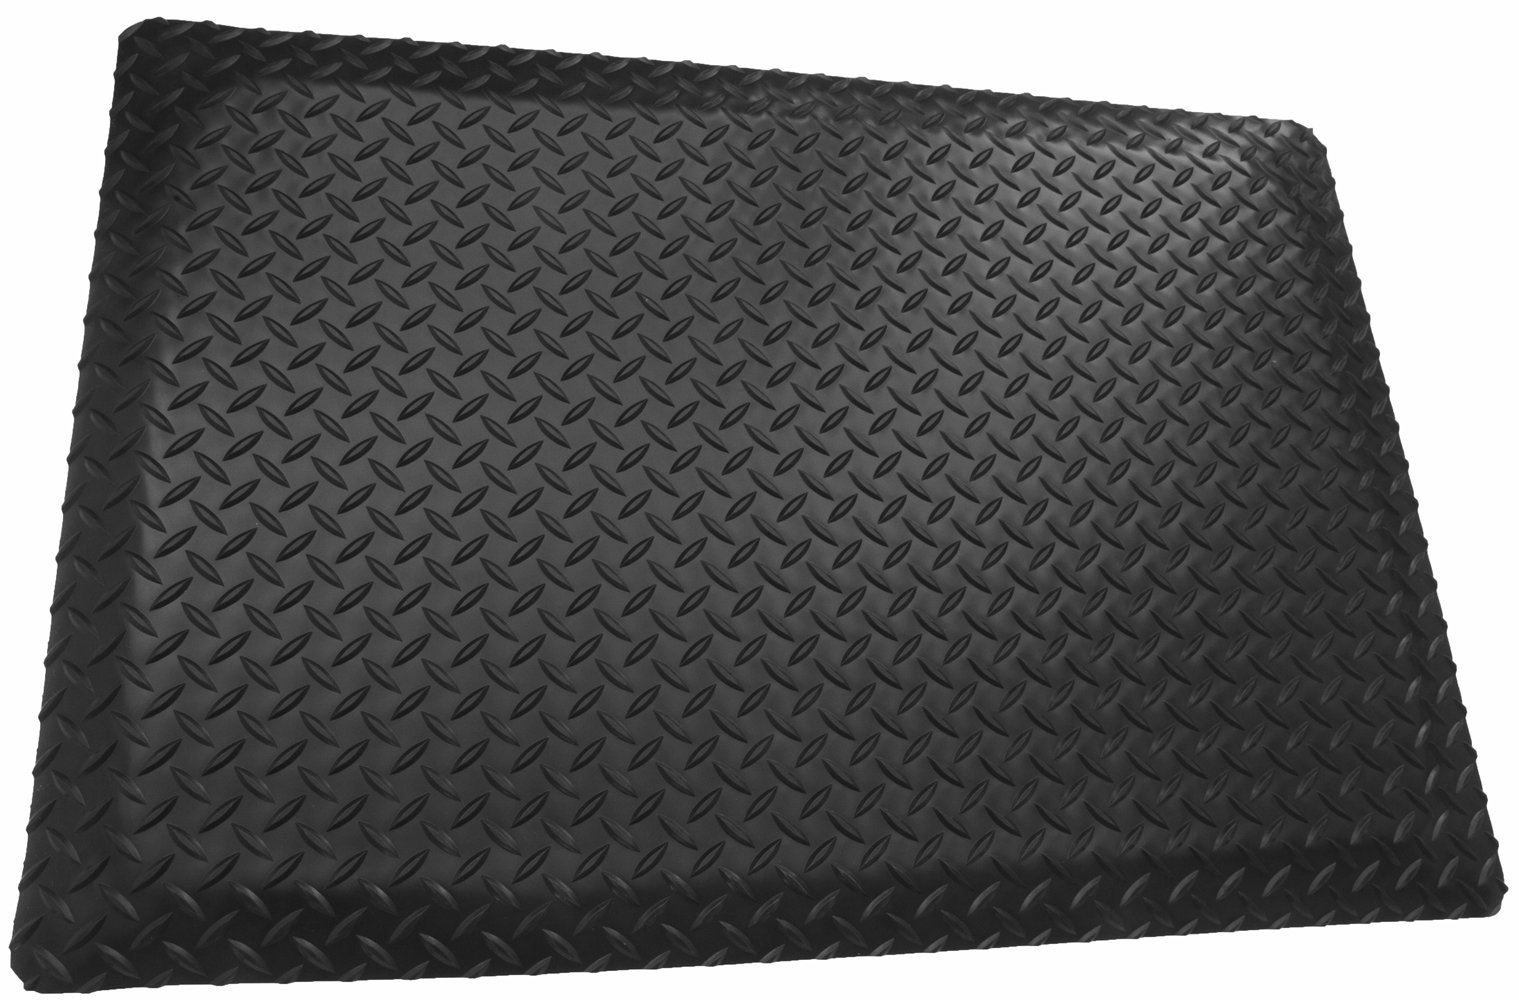 Rhino Mats ECD-2436TTDS Conductive Diamond Anti-Fatigue Mat, 2' Width x 3' Length x 1'' Thickness, Black